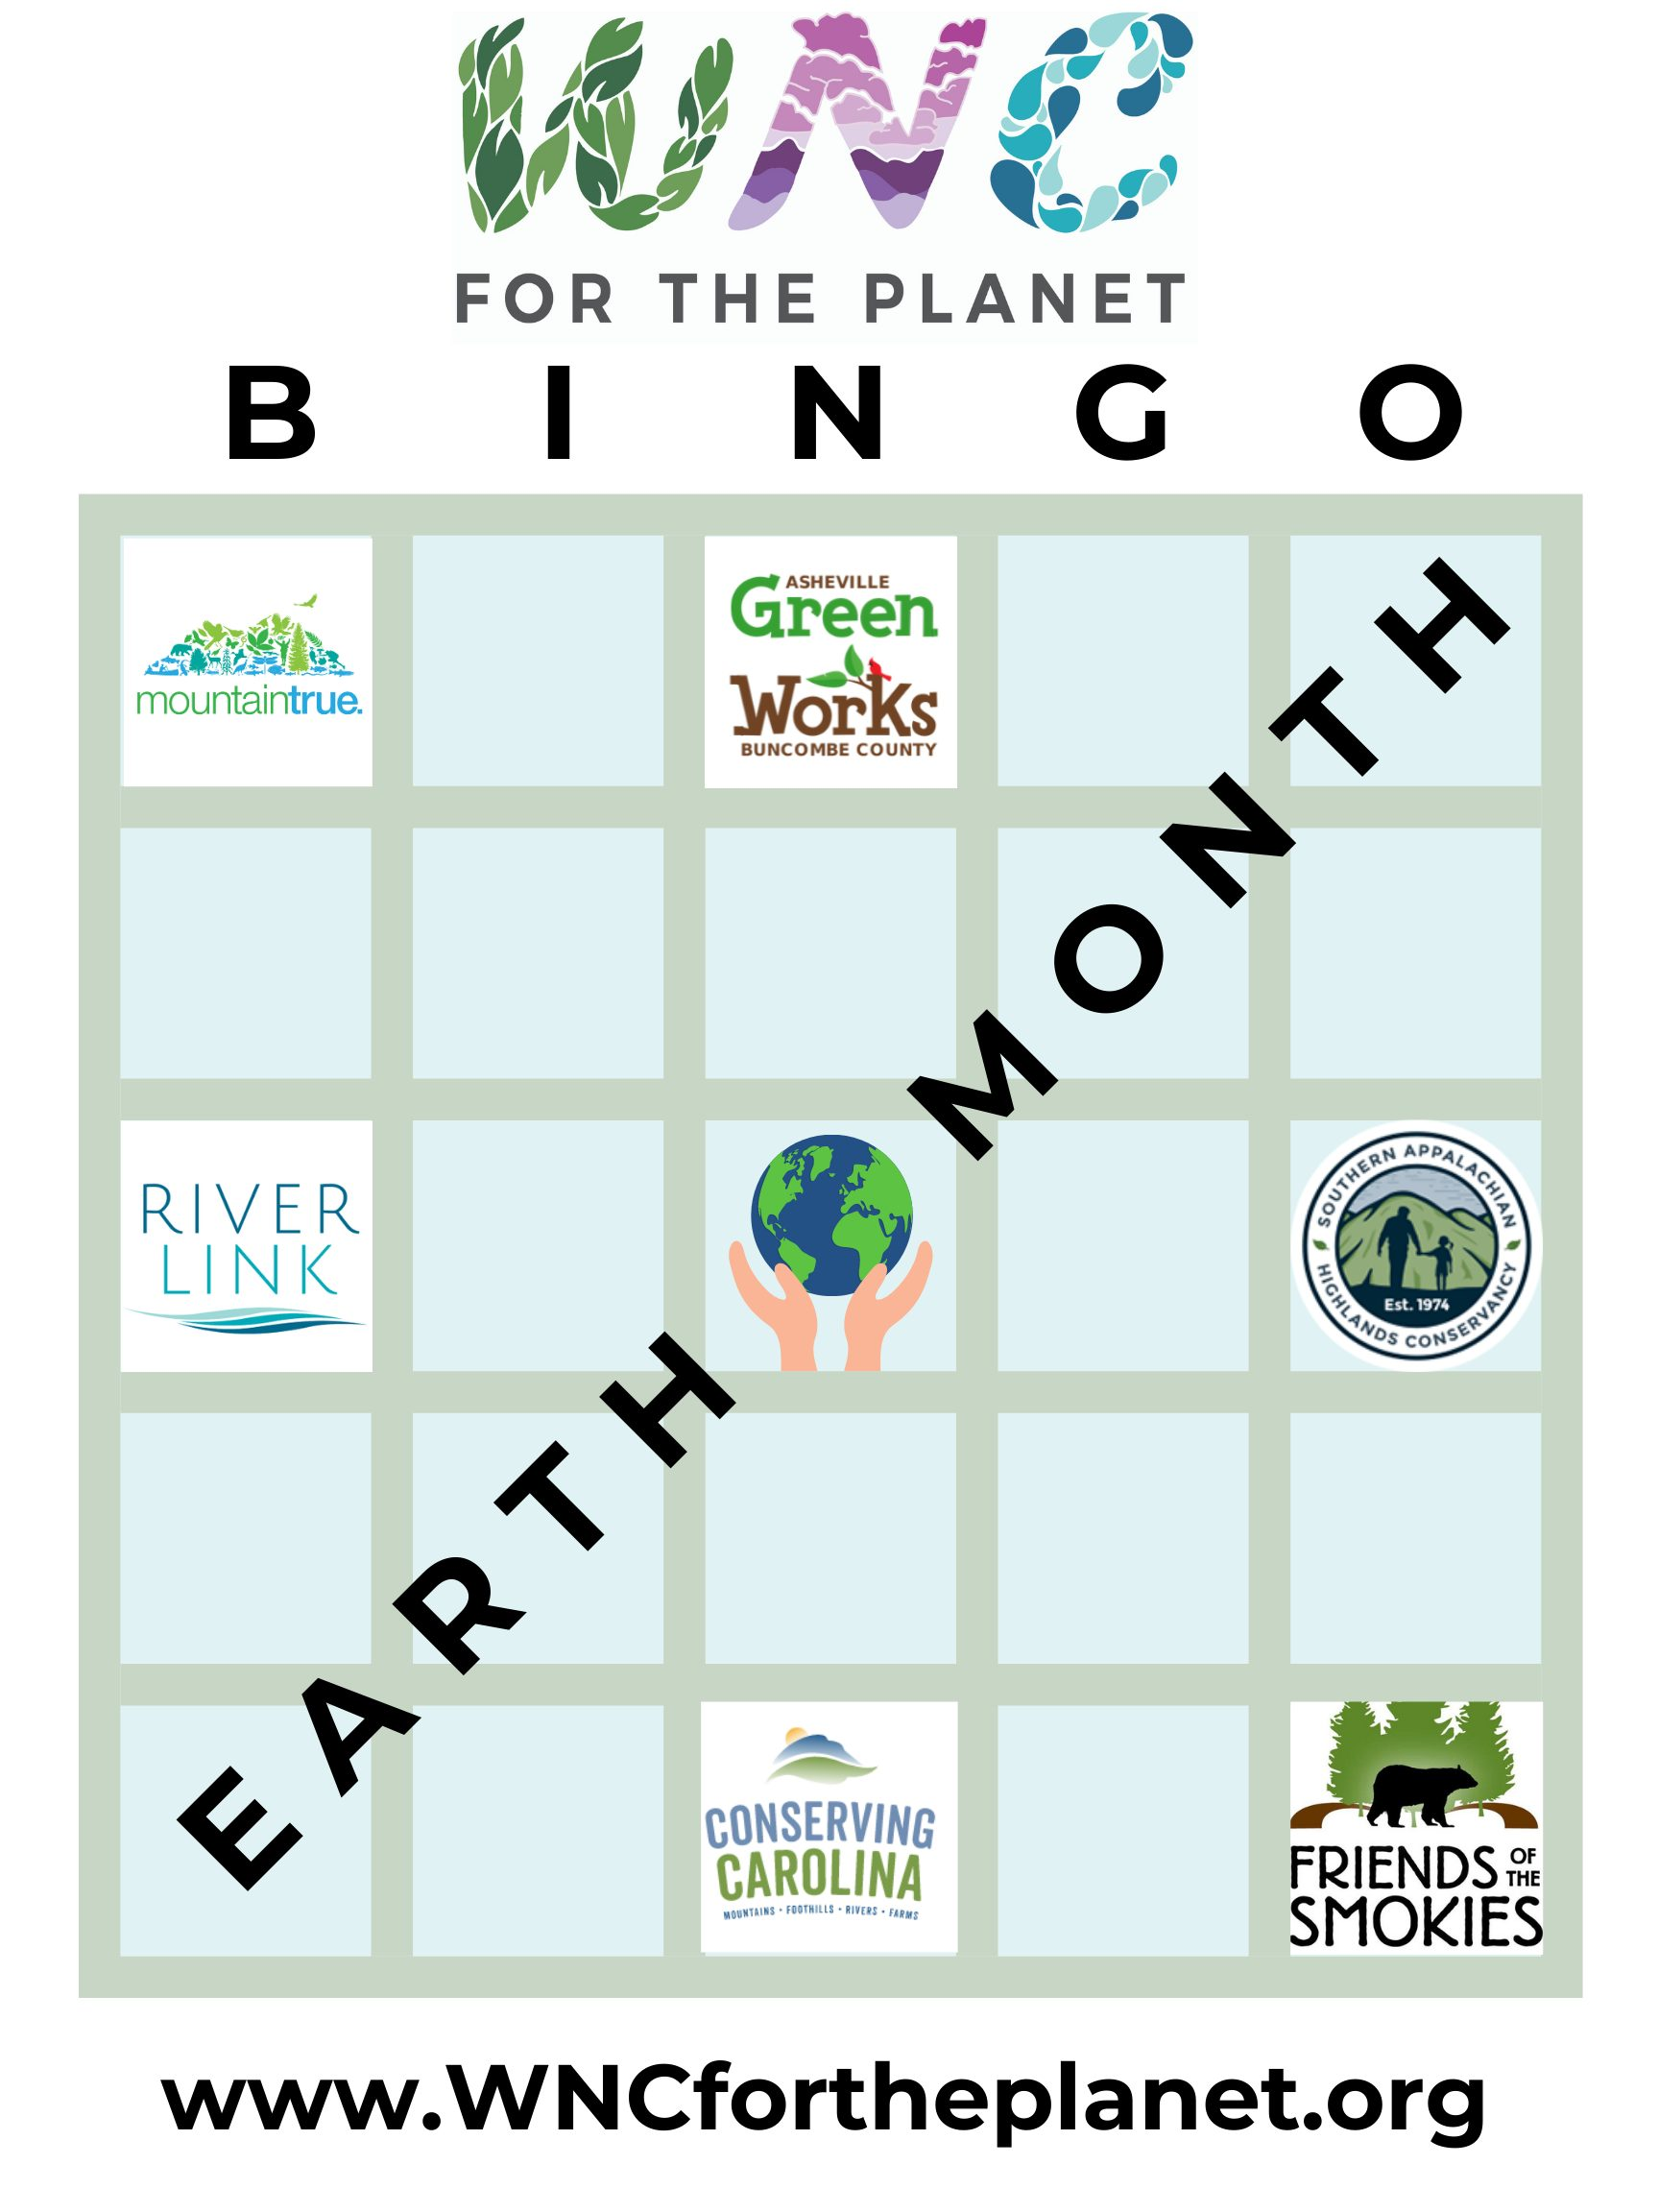 WNC for the planet Bingo Card